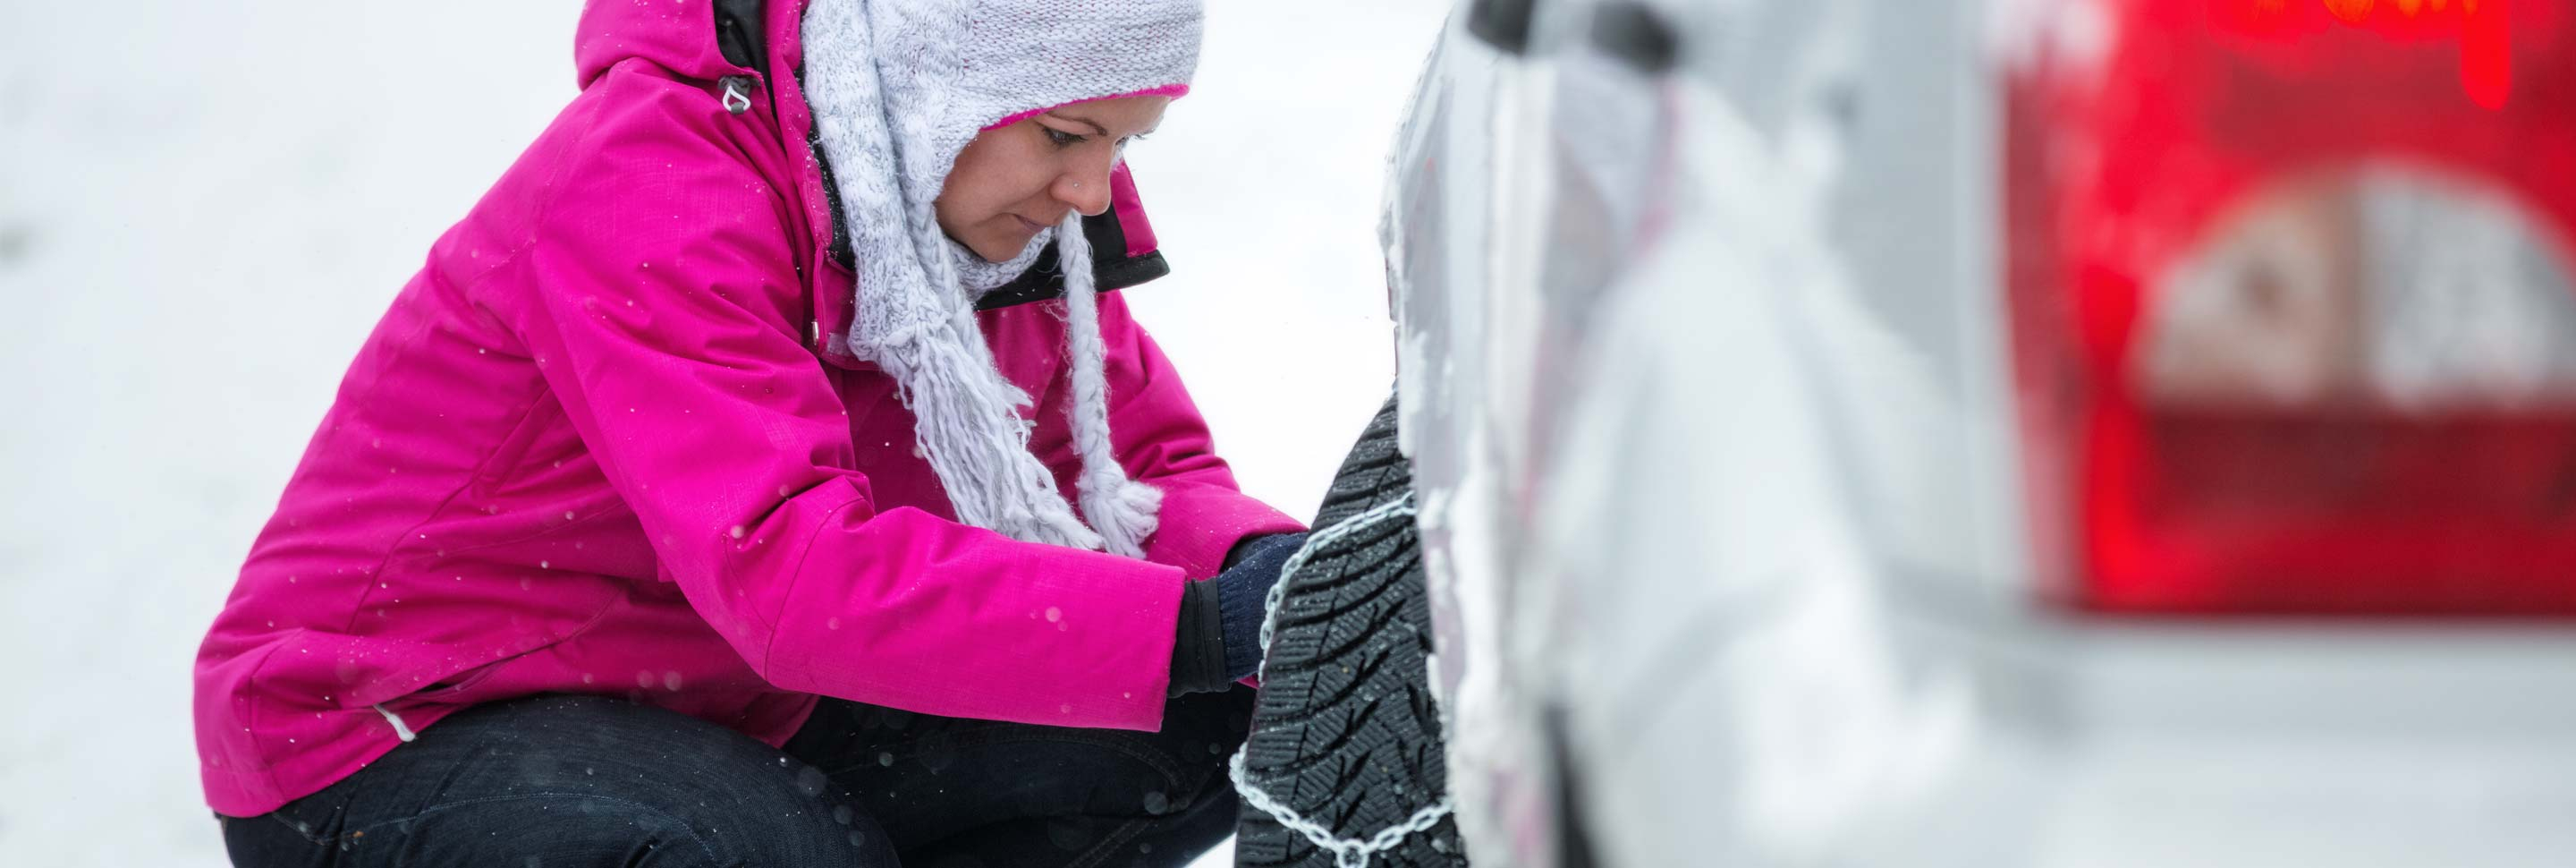 A woman putting chains on her snow tires.